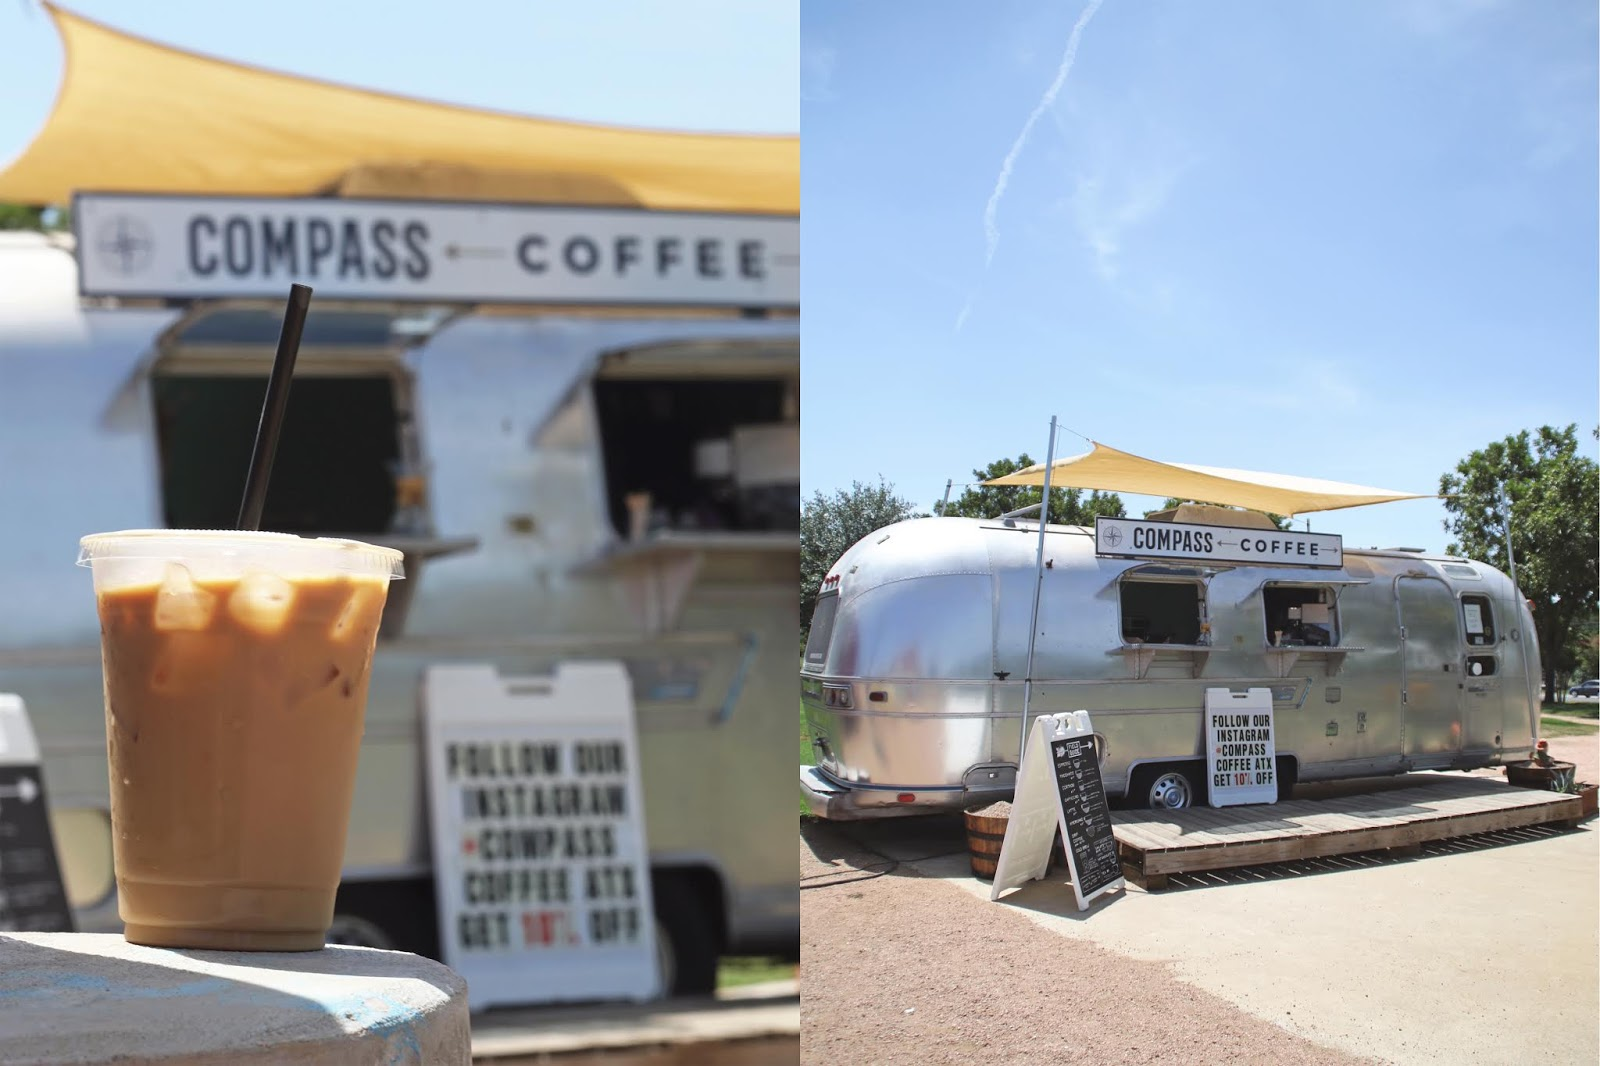 Compass Coffee Austin, Iced Coffee, Cozy Coffee Shop, Coffee Shops Vibe